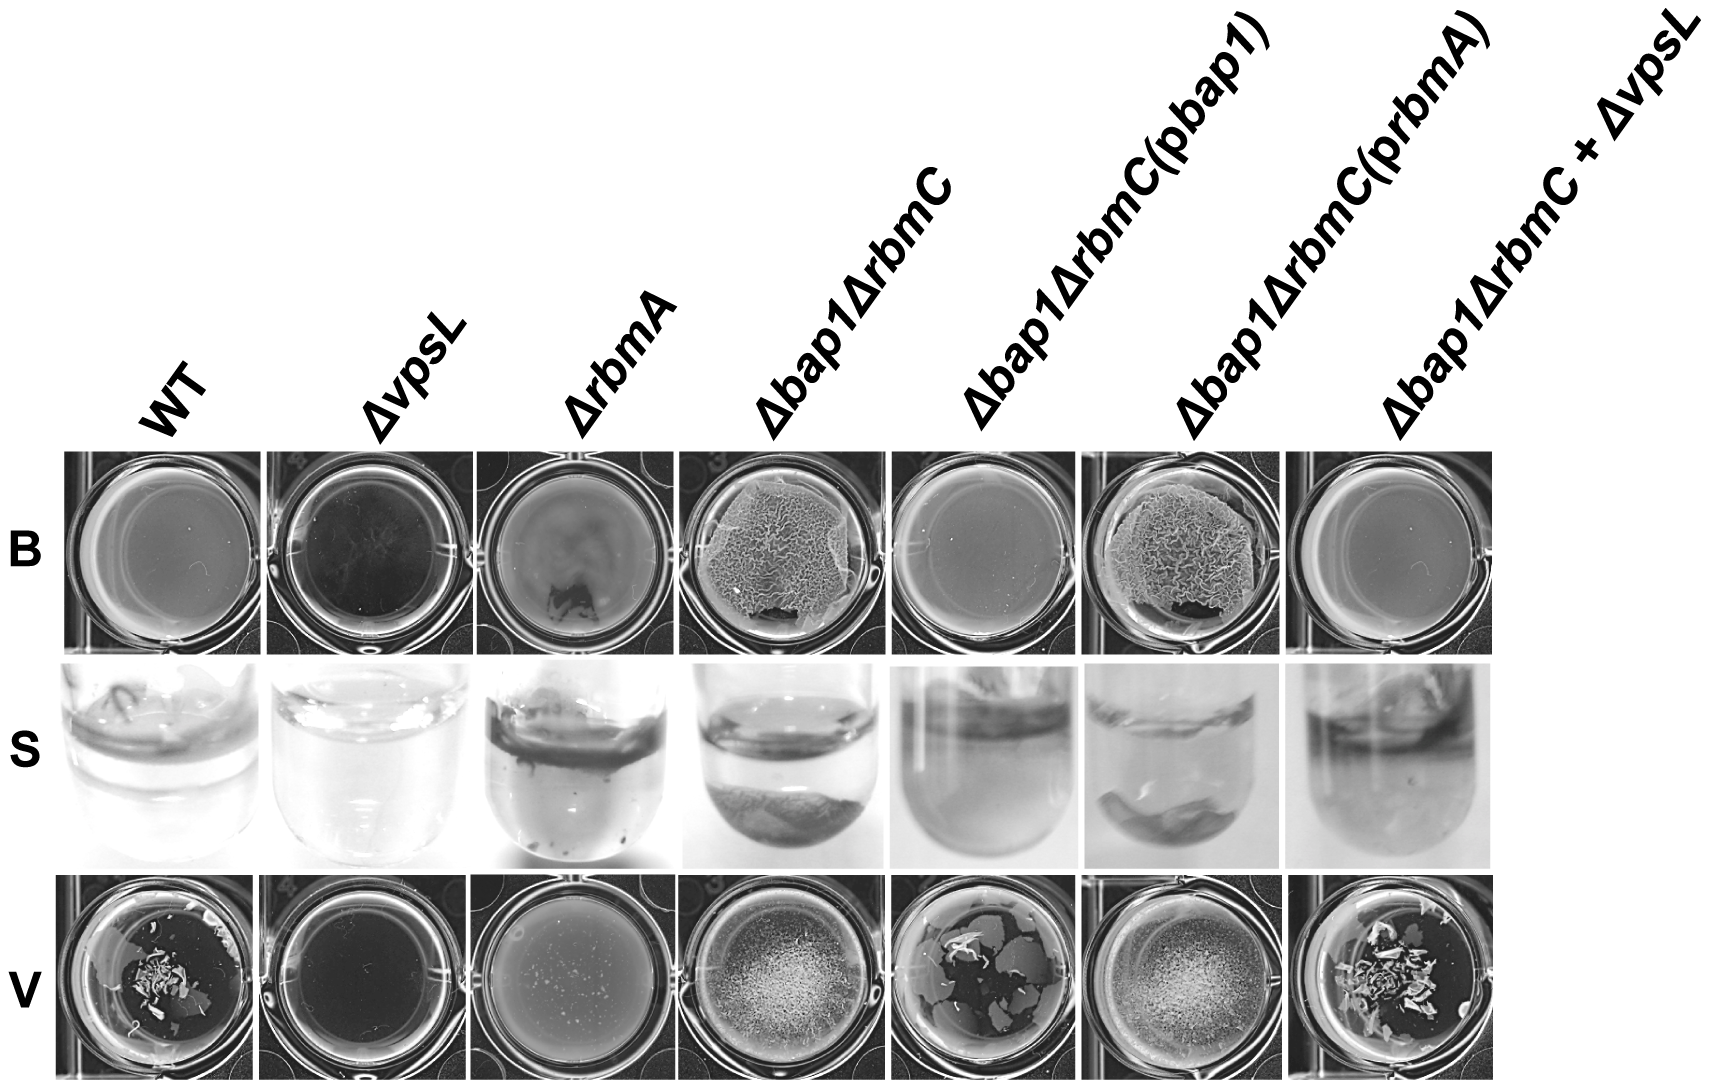 The Δ<i>bap1</i>Δ<i>rbmC</i> mutant biofilm is loosely adherent to the substratum.